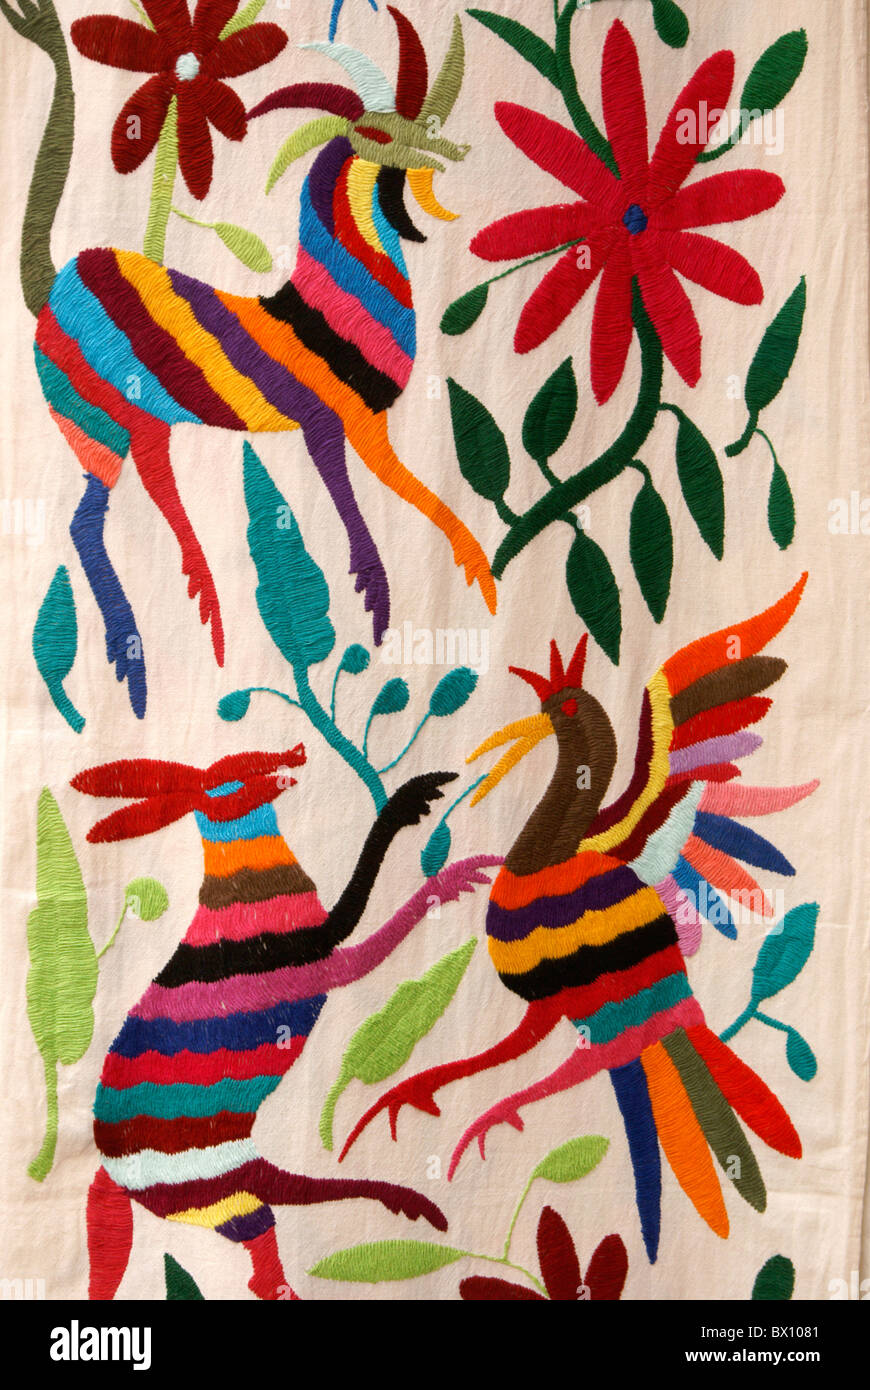 Traditional Embroidery From Otomi Village Of San Pablito Puebla Mexico For Sale In Miguel De Allende